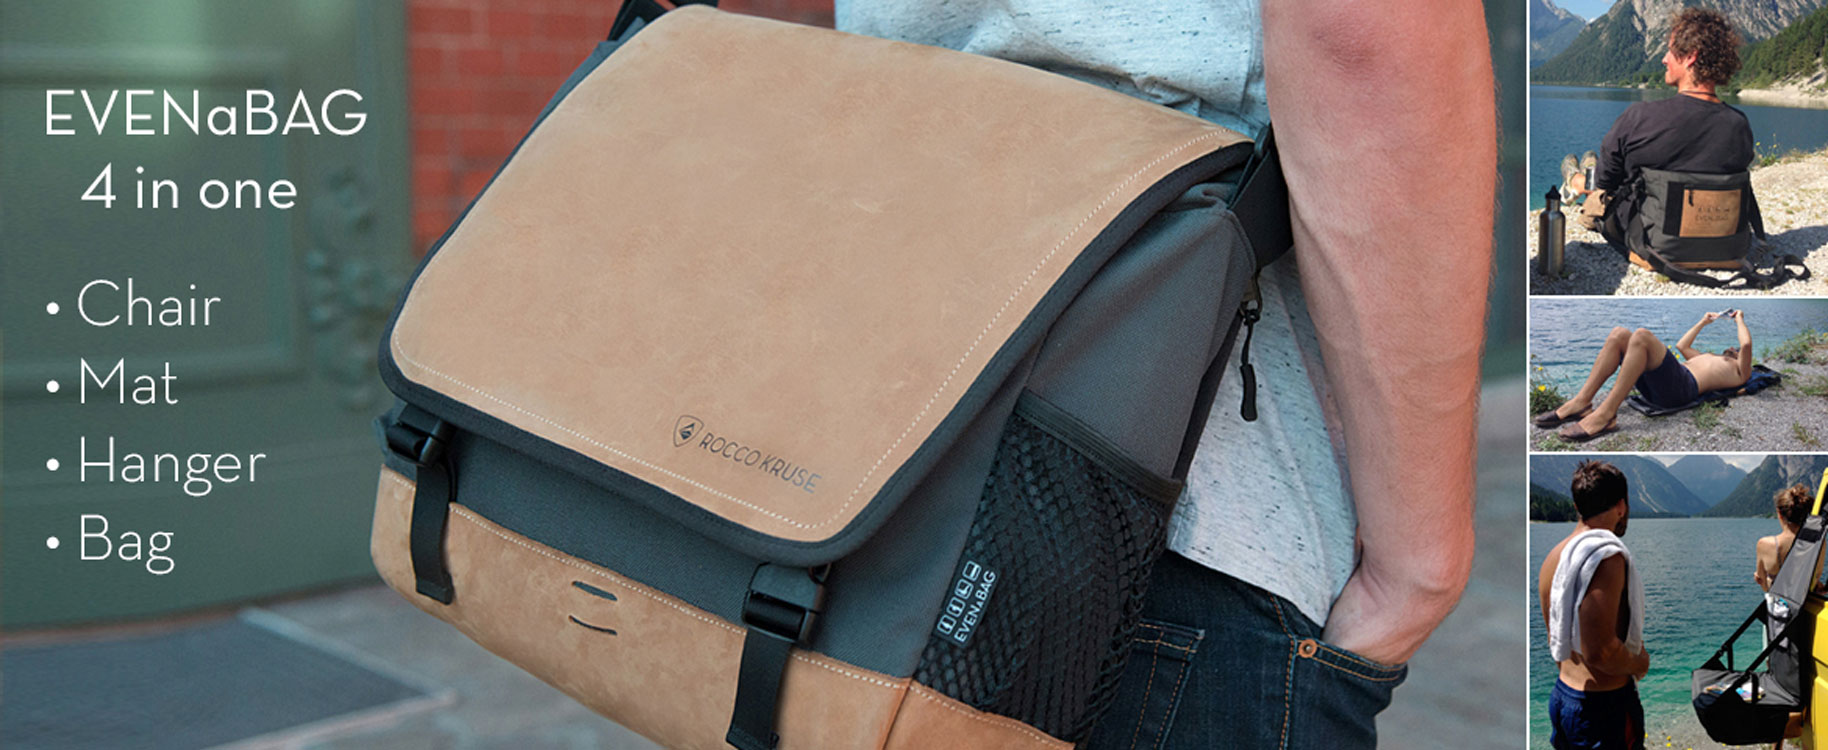 a multifunctional shoulder bag and camping chair